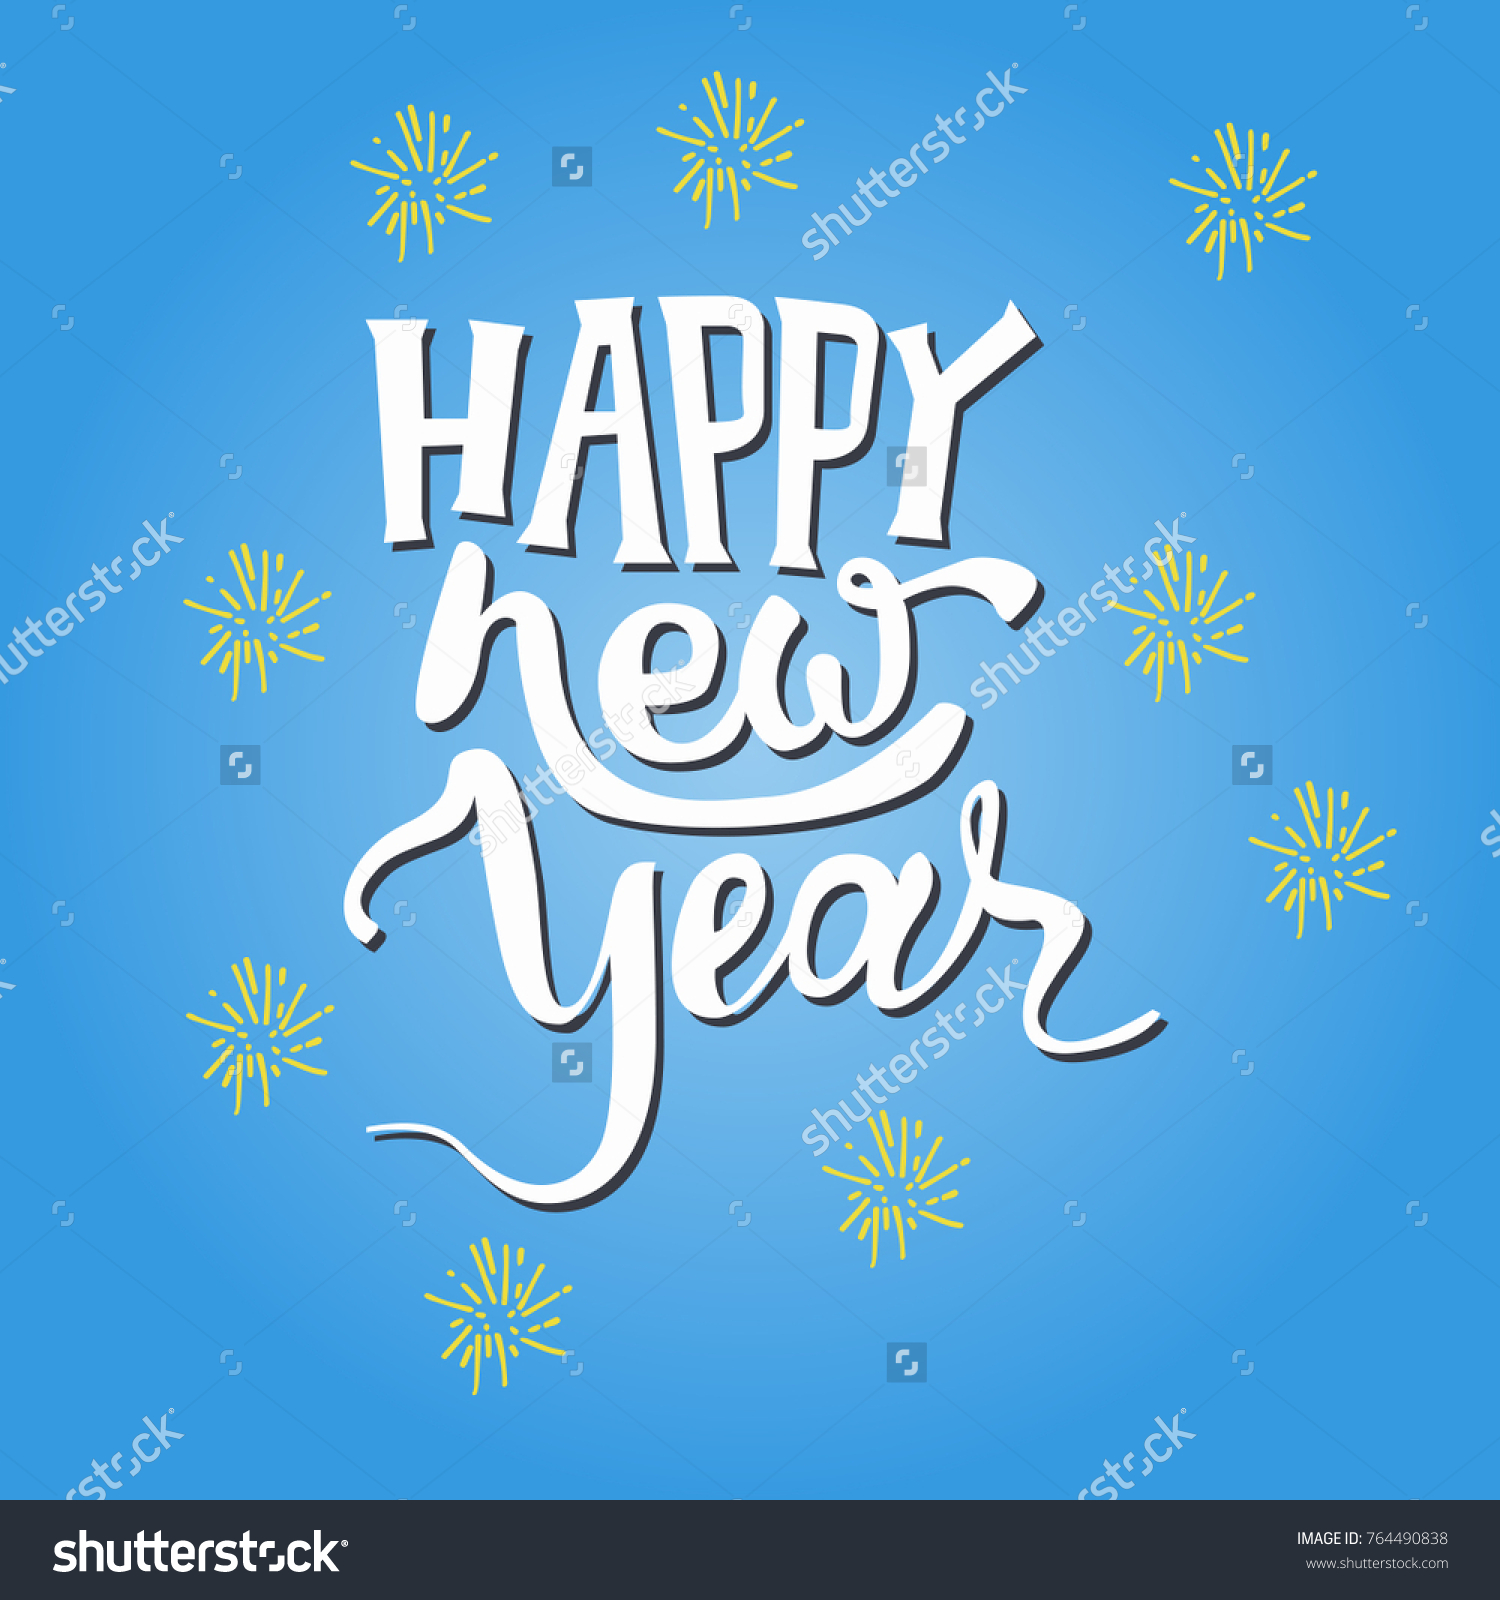 Happy new year text hand drawn stock vector 764490838 shutterstock happy new year text hand drawn lettering holiday greetings quote great for christmas kristyandbryce Images